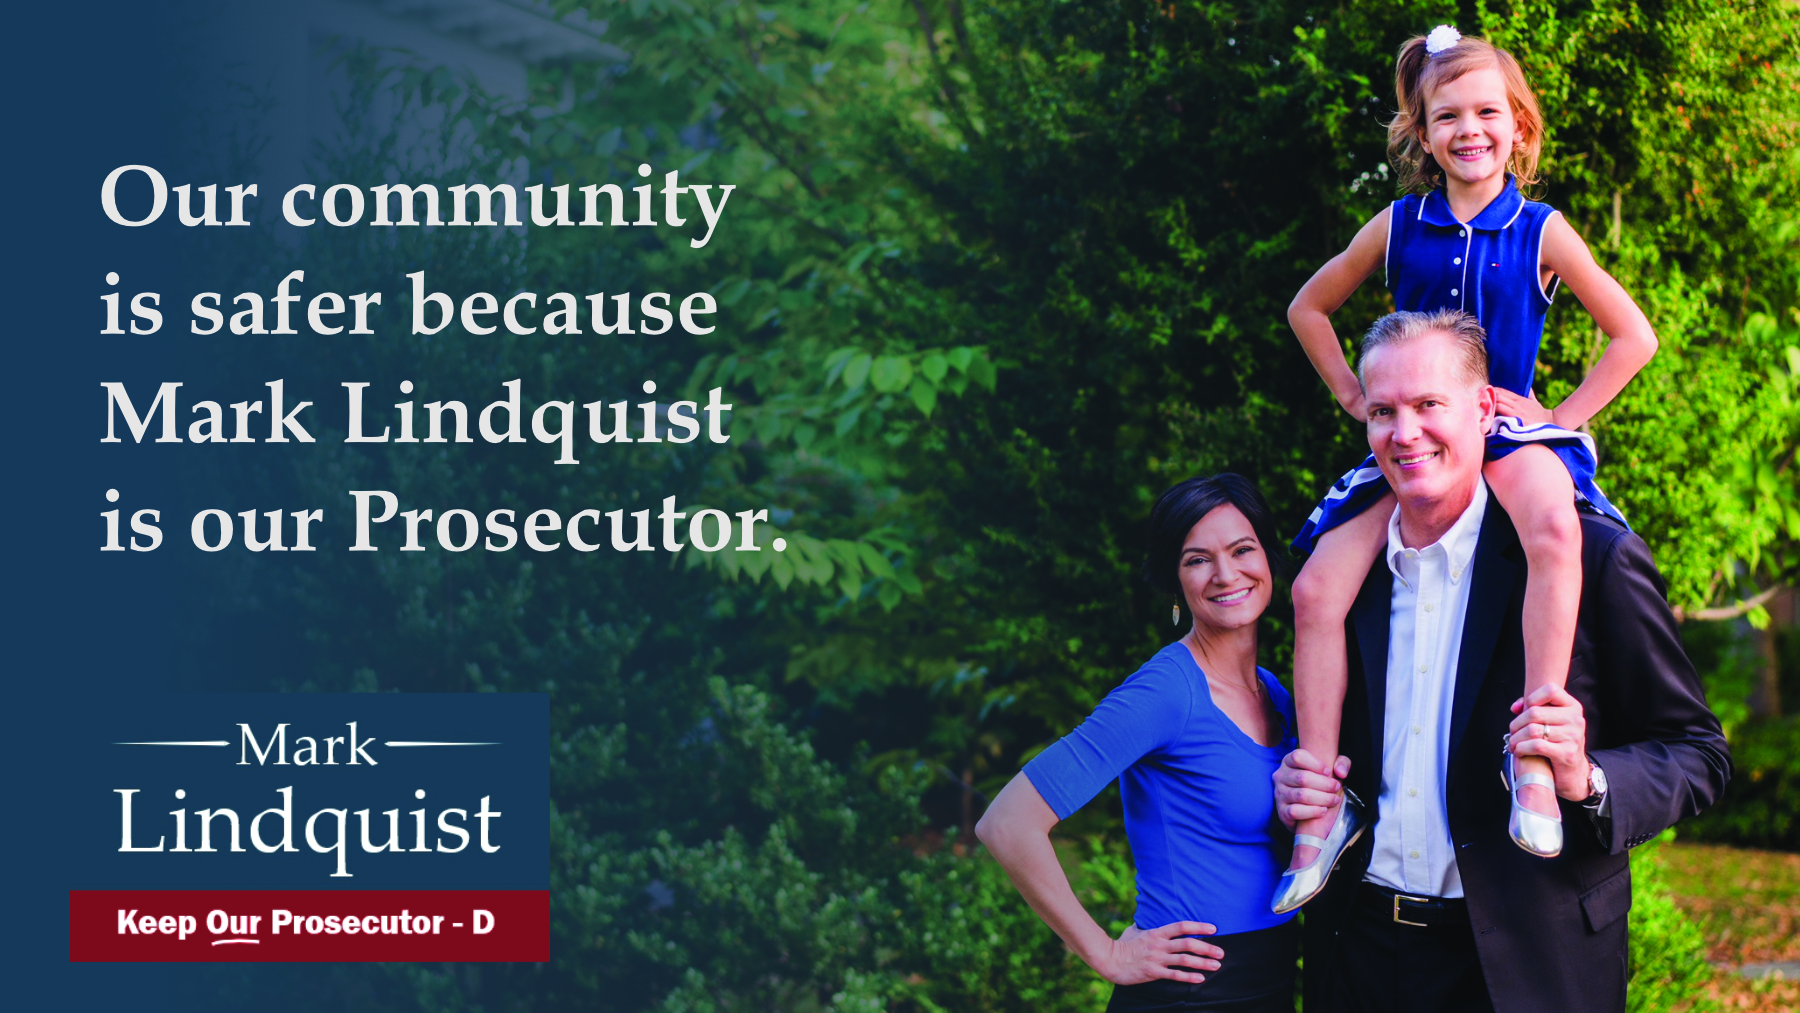 Our Community is Safer Because Mark Lindquist is Our Prosecutor